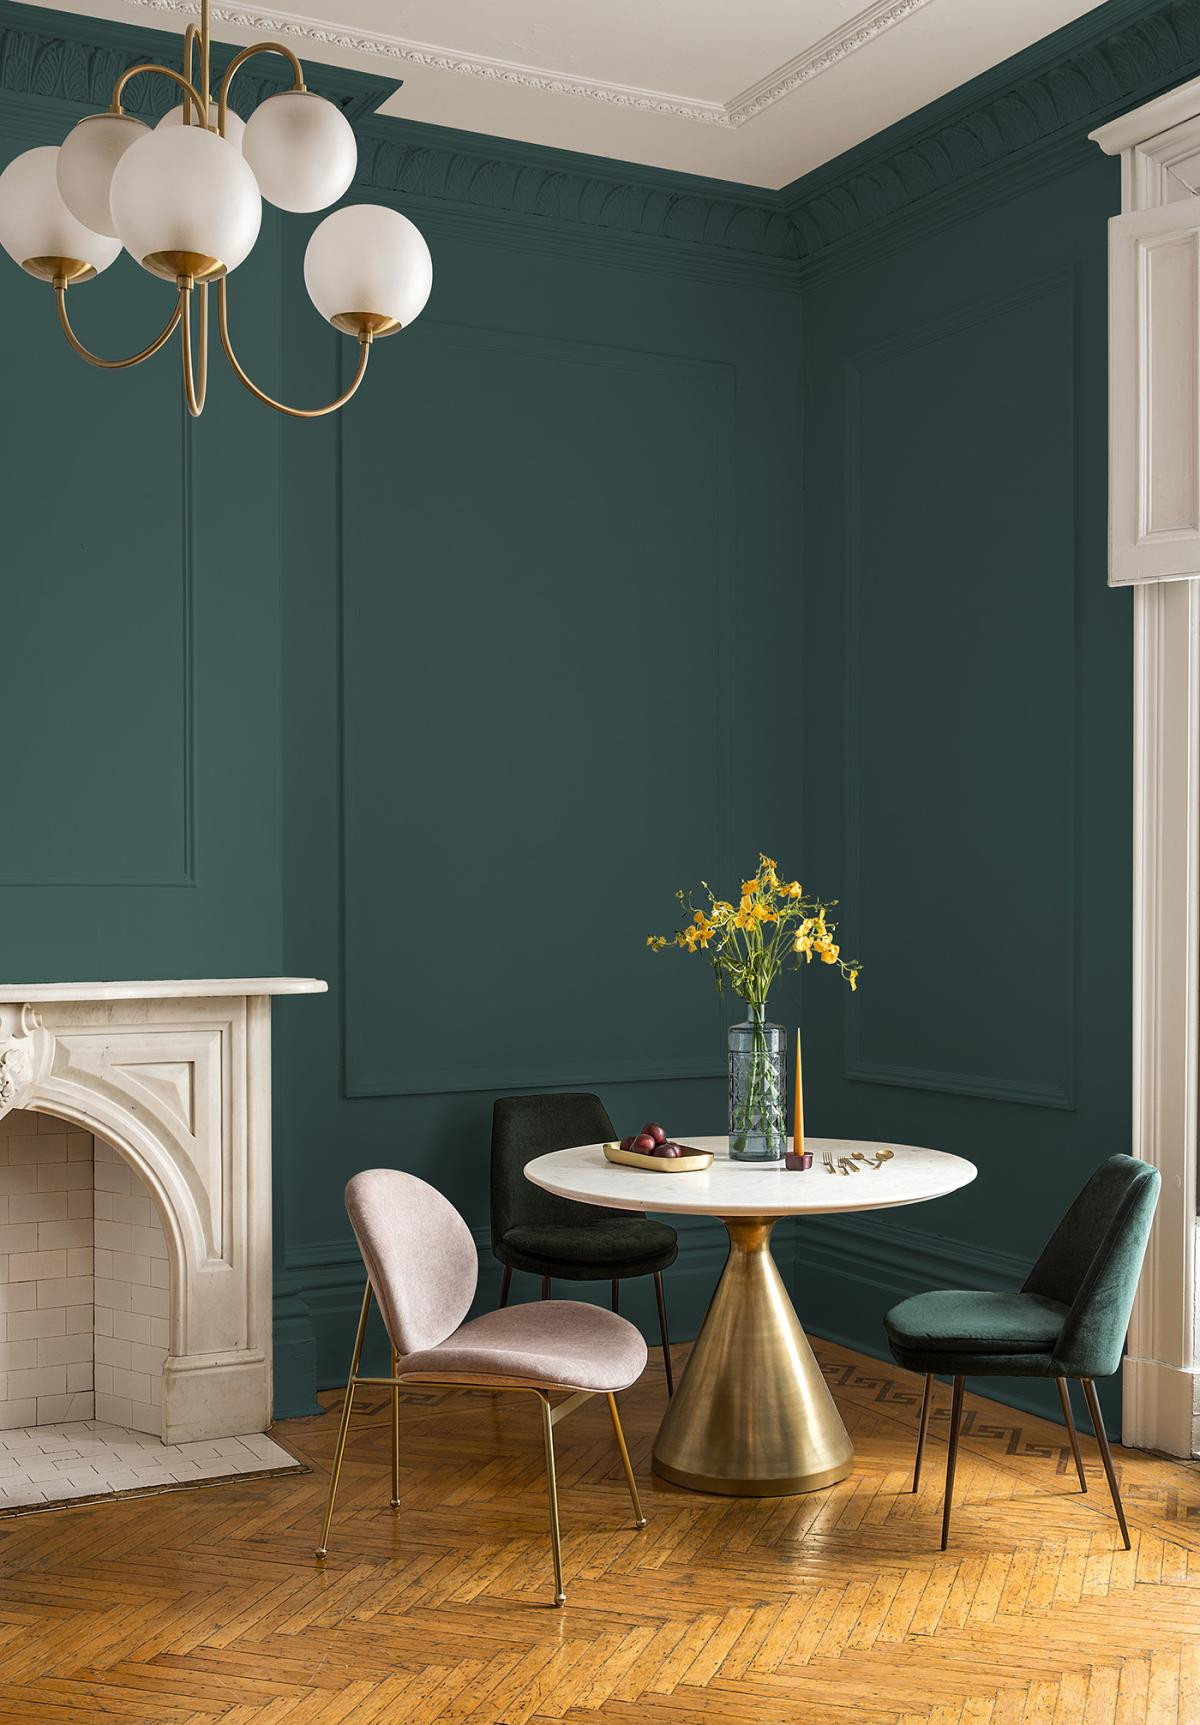 Best ideas about Interior Paint Colors 2019 . Save or Pin Best Interior Paint Colors for 2019 Now.